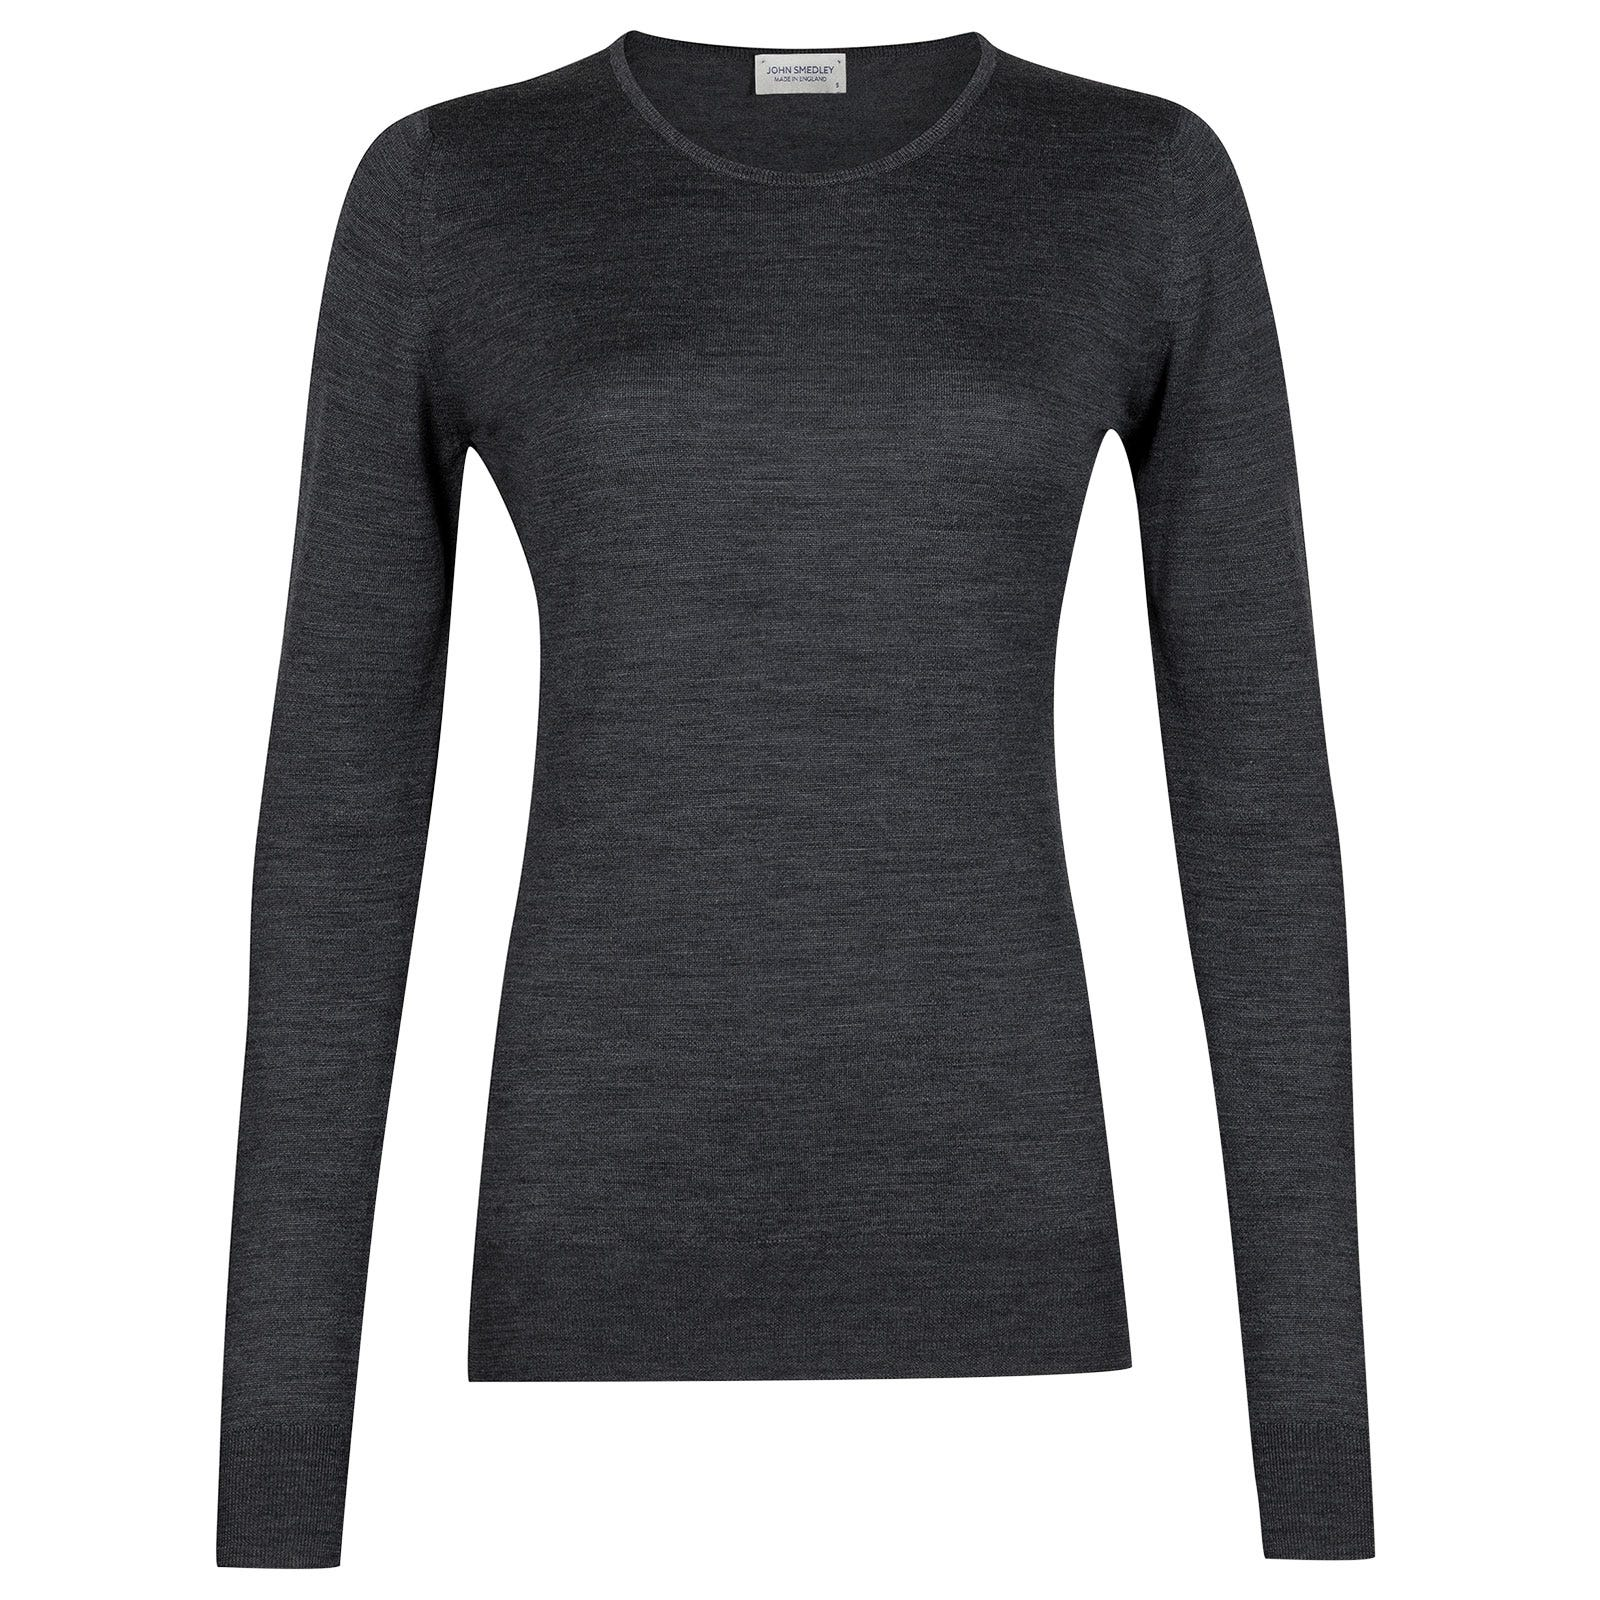 John Smedley geranium Merino Wool Sweater in Charcoal-L